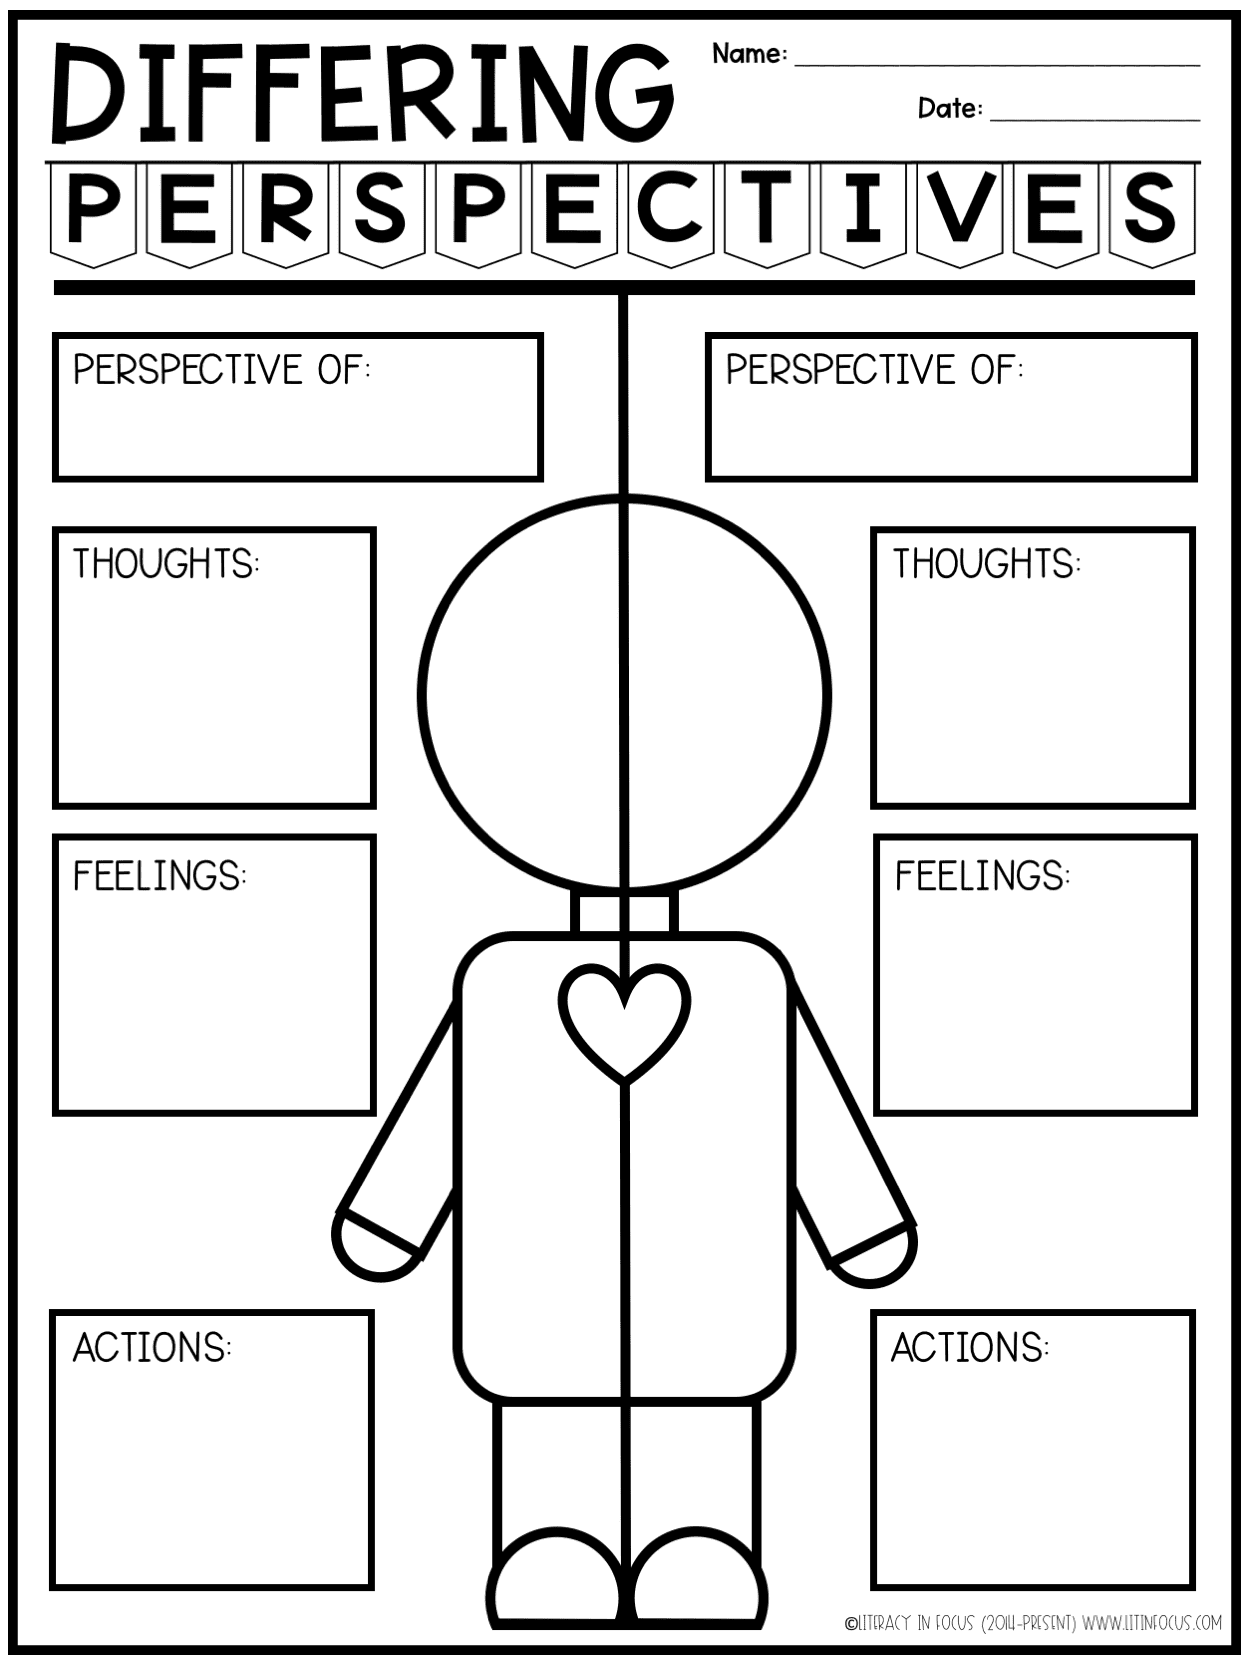 5 Key Reasons To Teach Differing Perspectives With Images